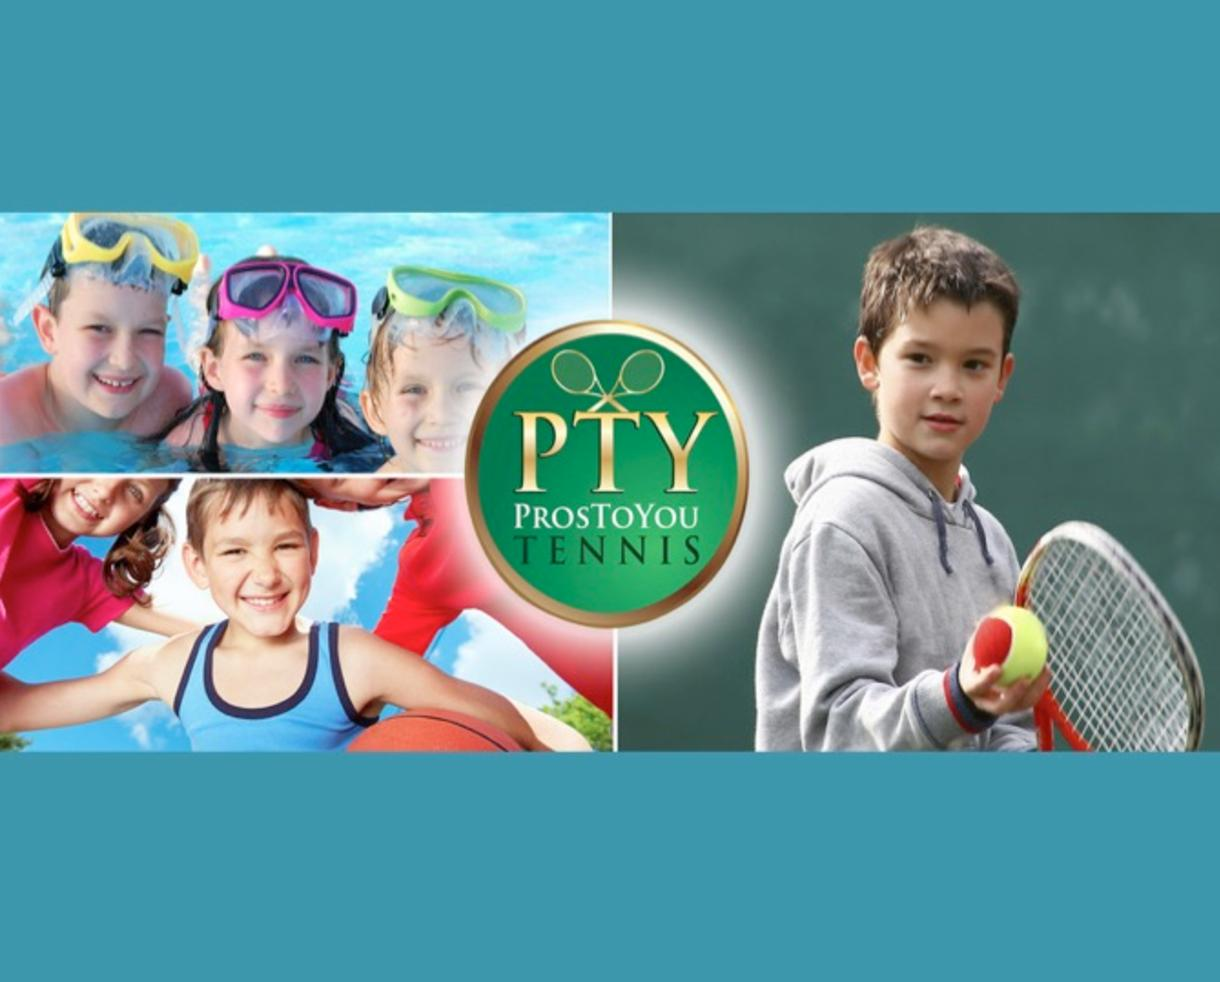 $280 for Pros To You Tennis Camp for Ages 5-14 at Seven Locks Swim & Tennis Club in Bethesda or Tallyho Swim and Tennis Club in Potomac ($350 Value - 20% Off)